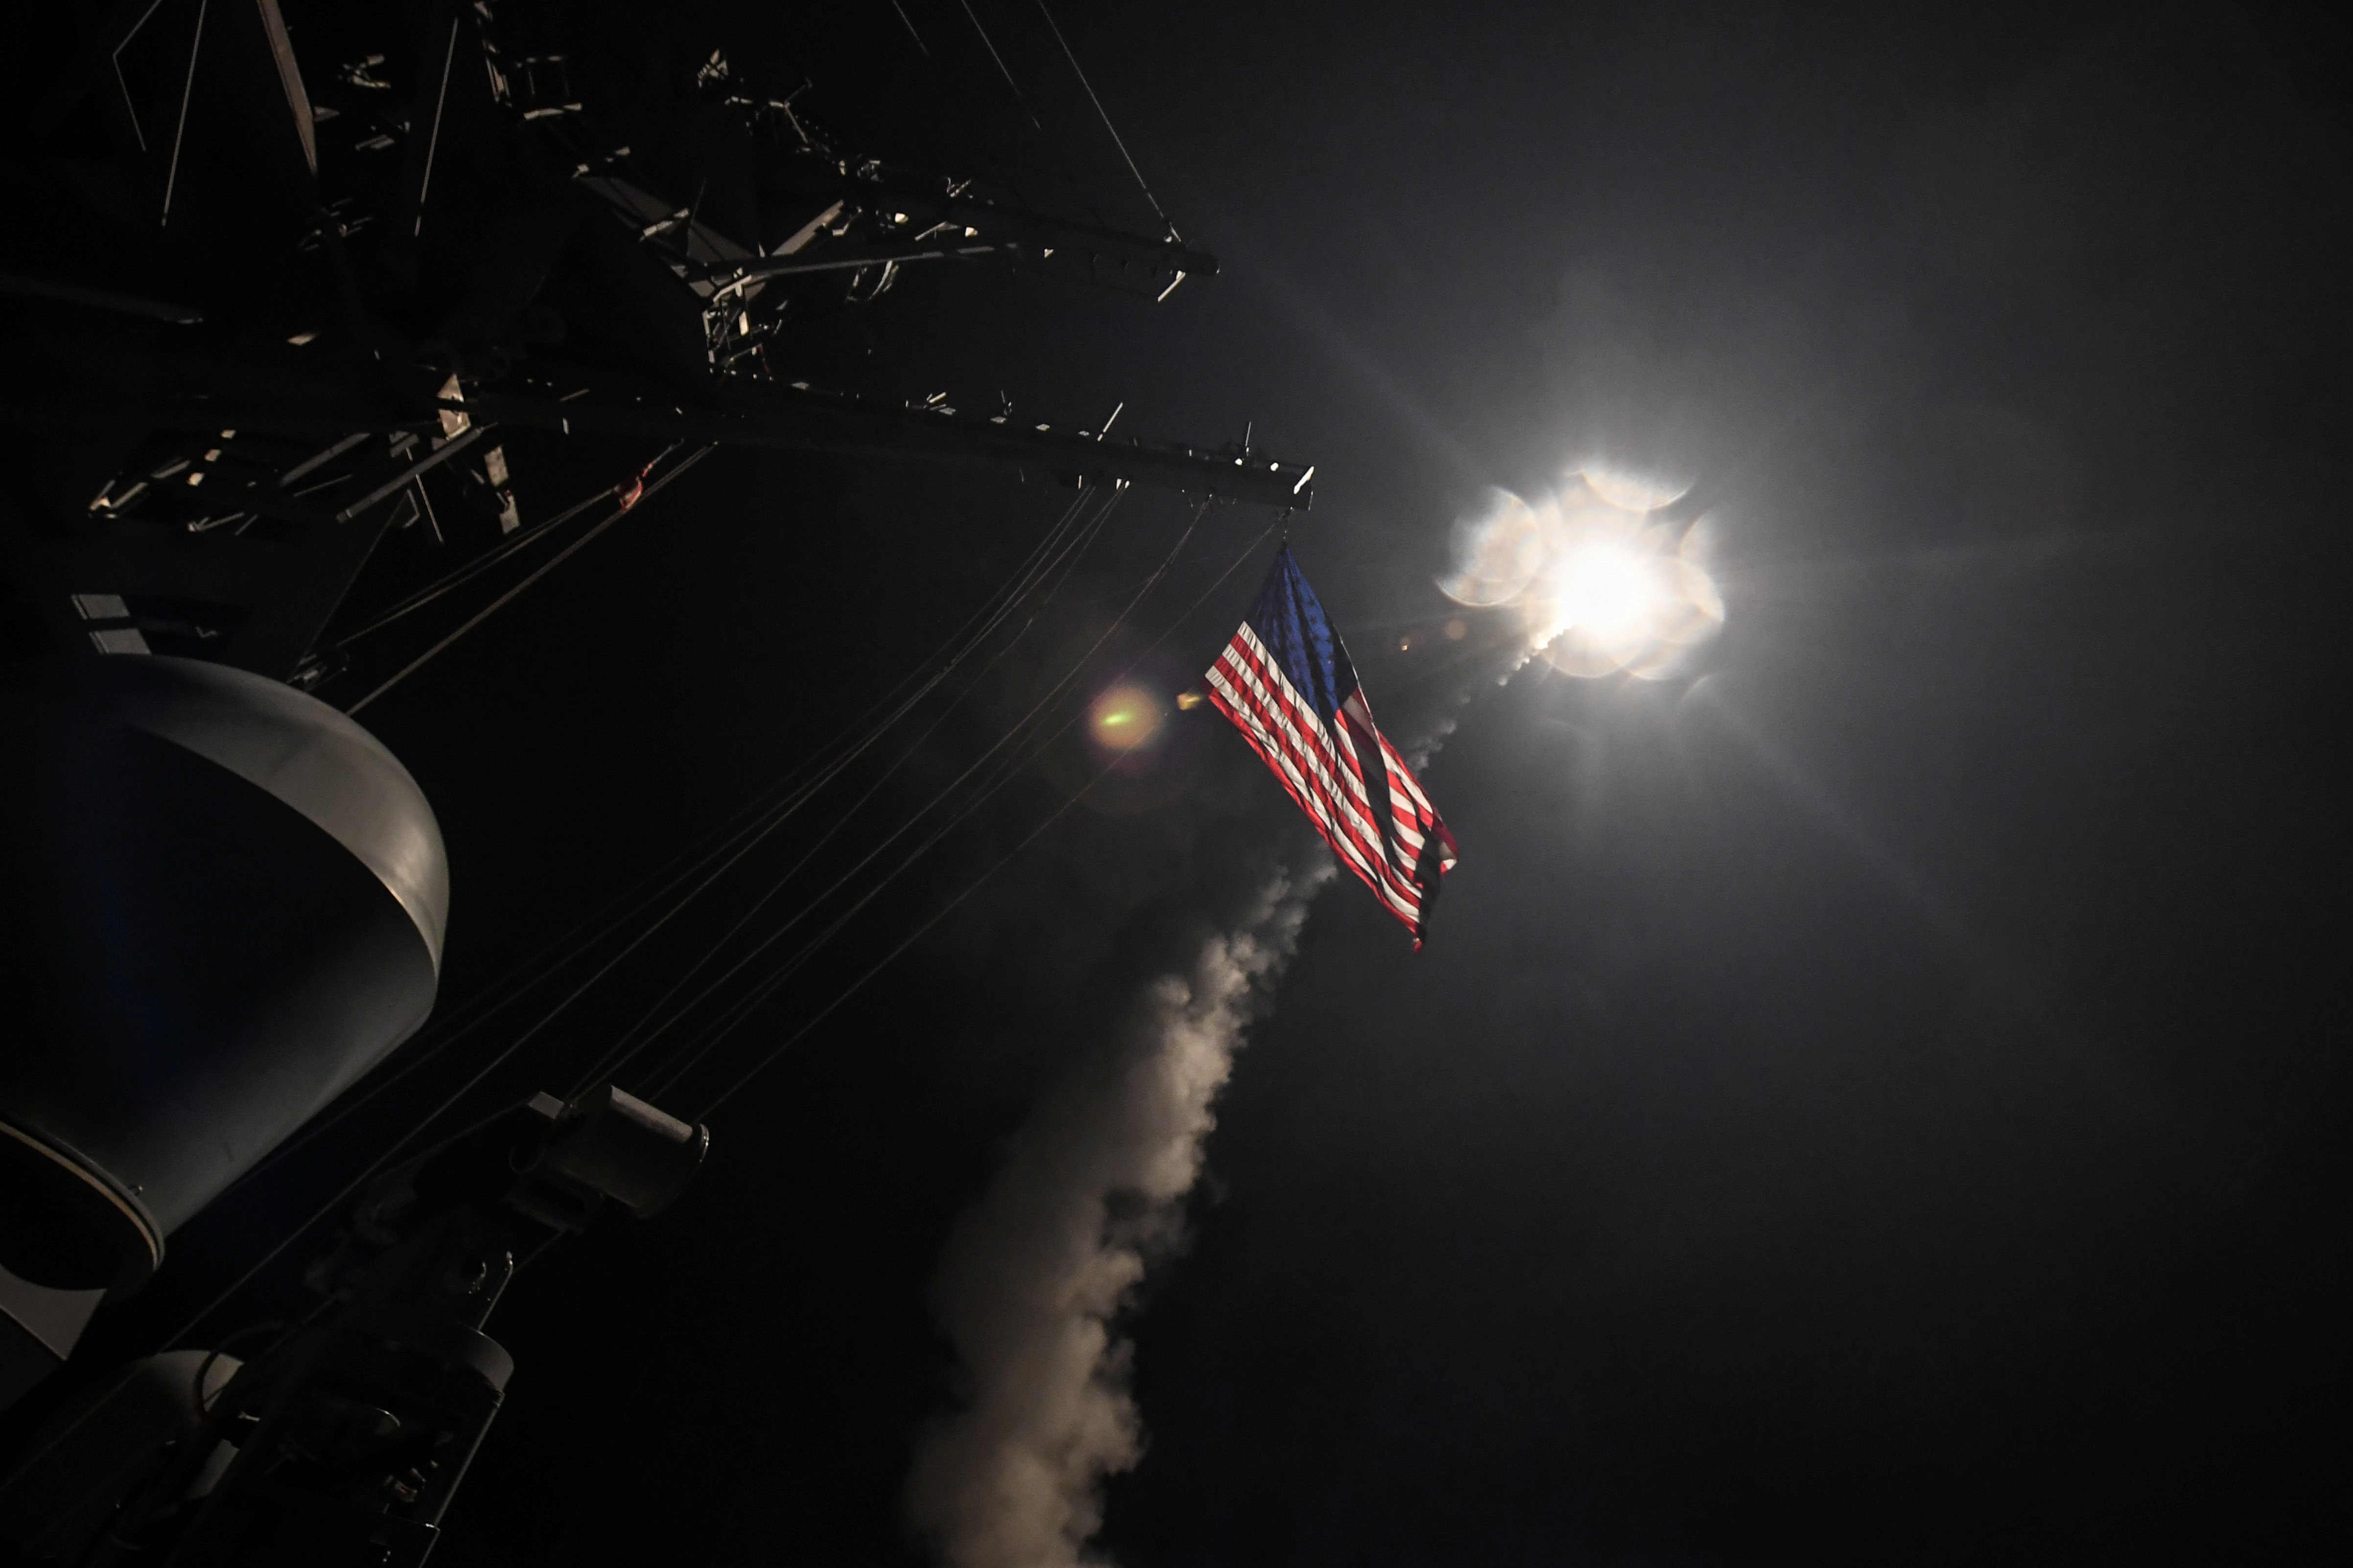 The risks of war in the Middle East, as the US confronts Syria and Iran